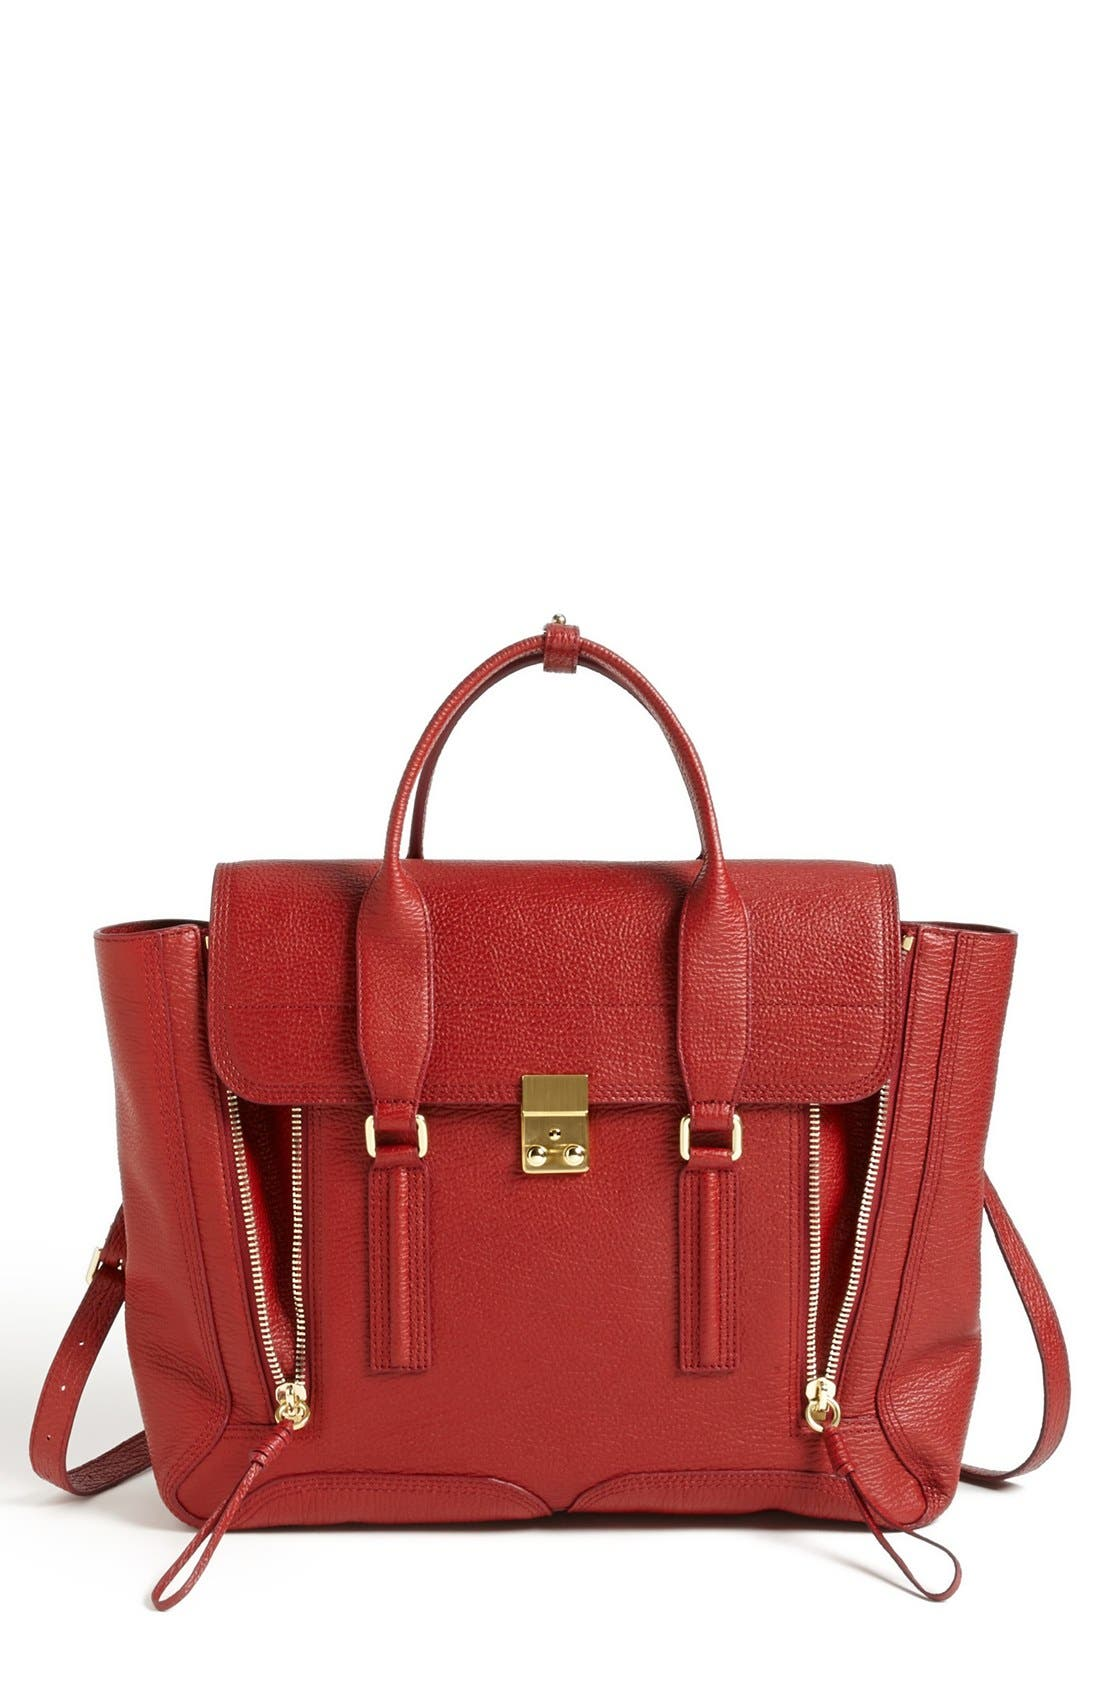 Main Image - 3.1 Phillip Lim 'Pashli' Shark Embossed Leather Satchel